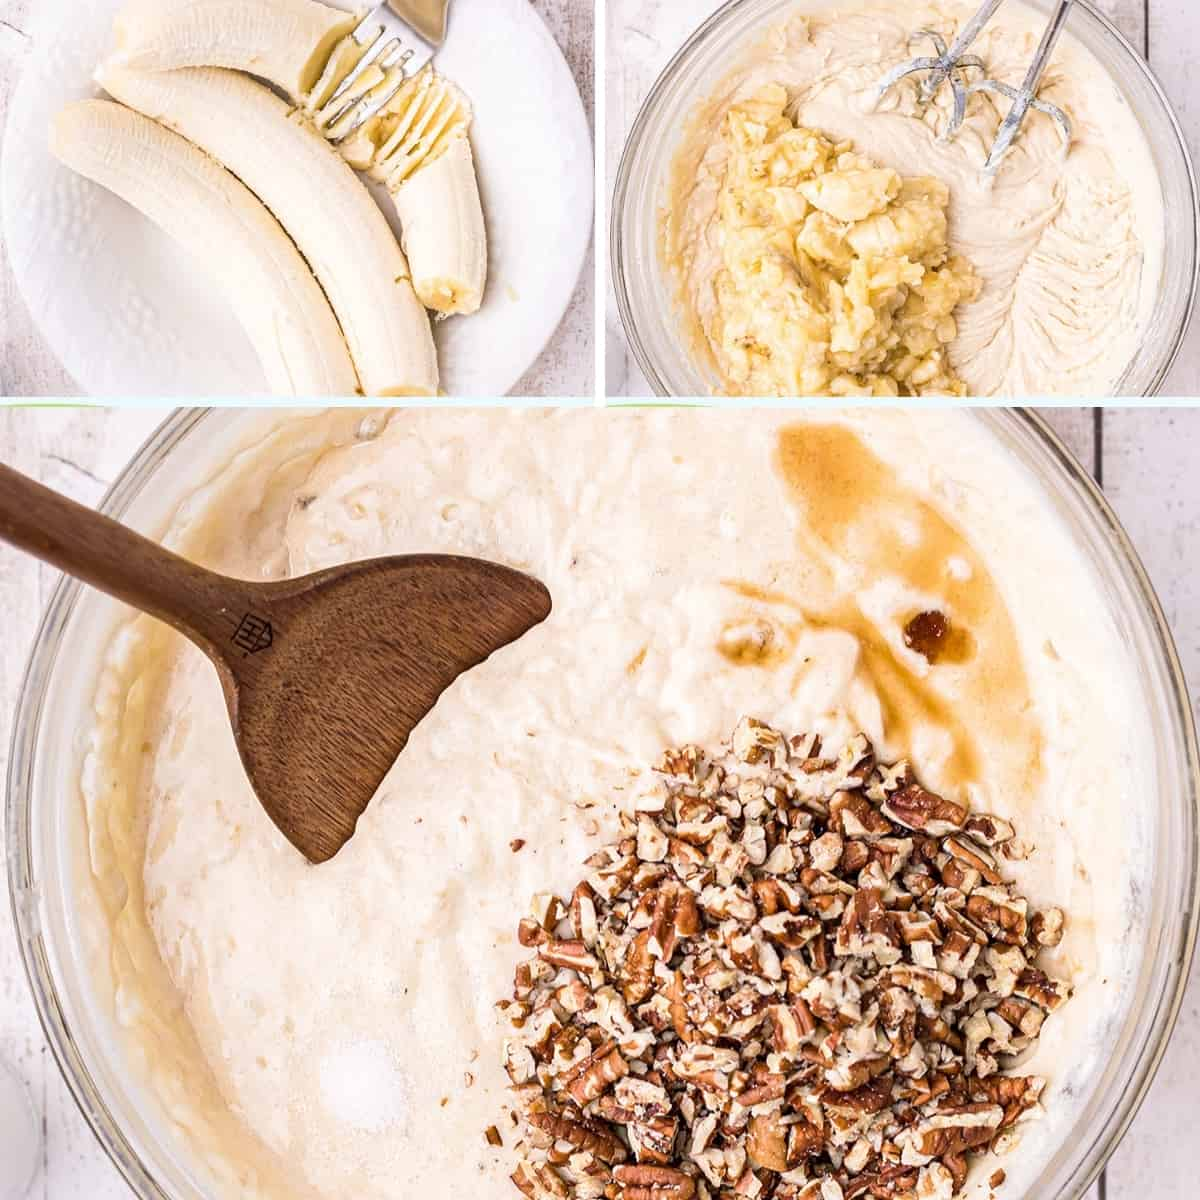 Photo collage showing (upper left) mashing bananas, (upper right) adding mashed bananas to batter, and (lower) stirring pecans, salt, and vanilla into the batter.